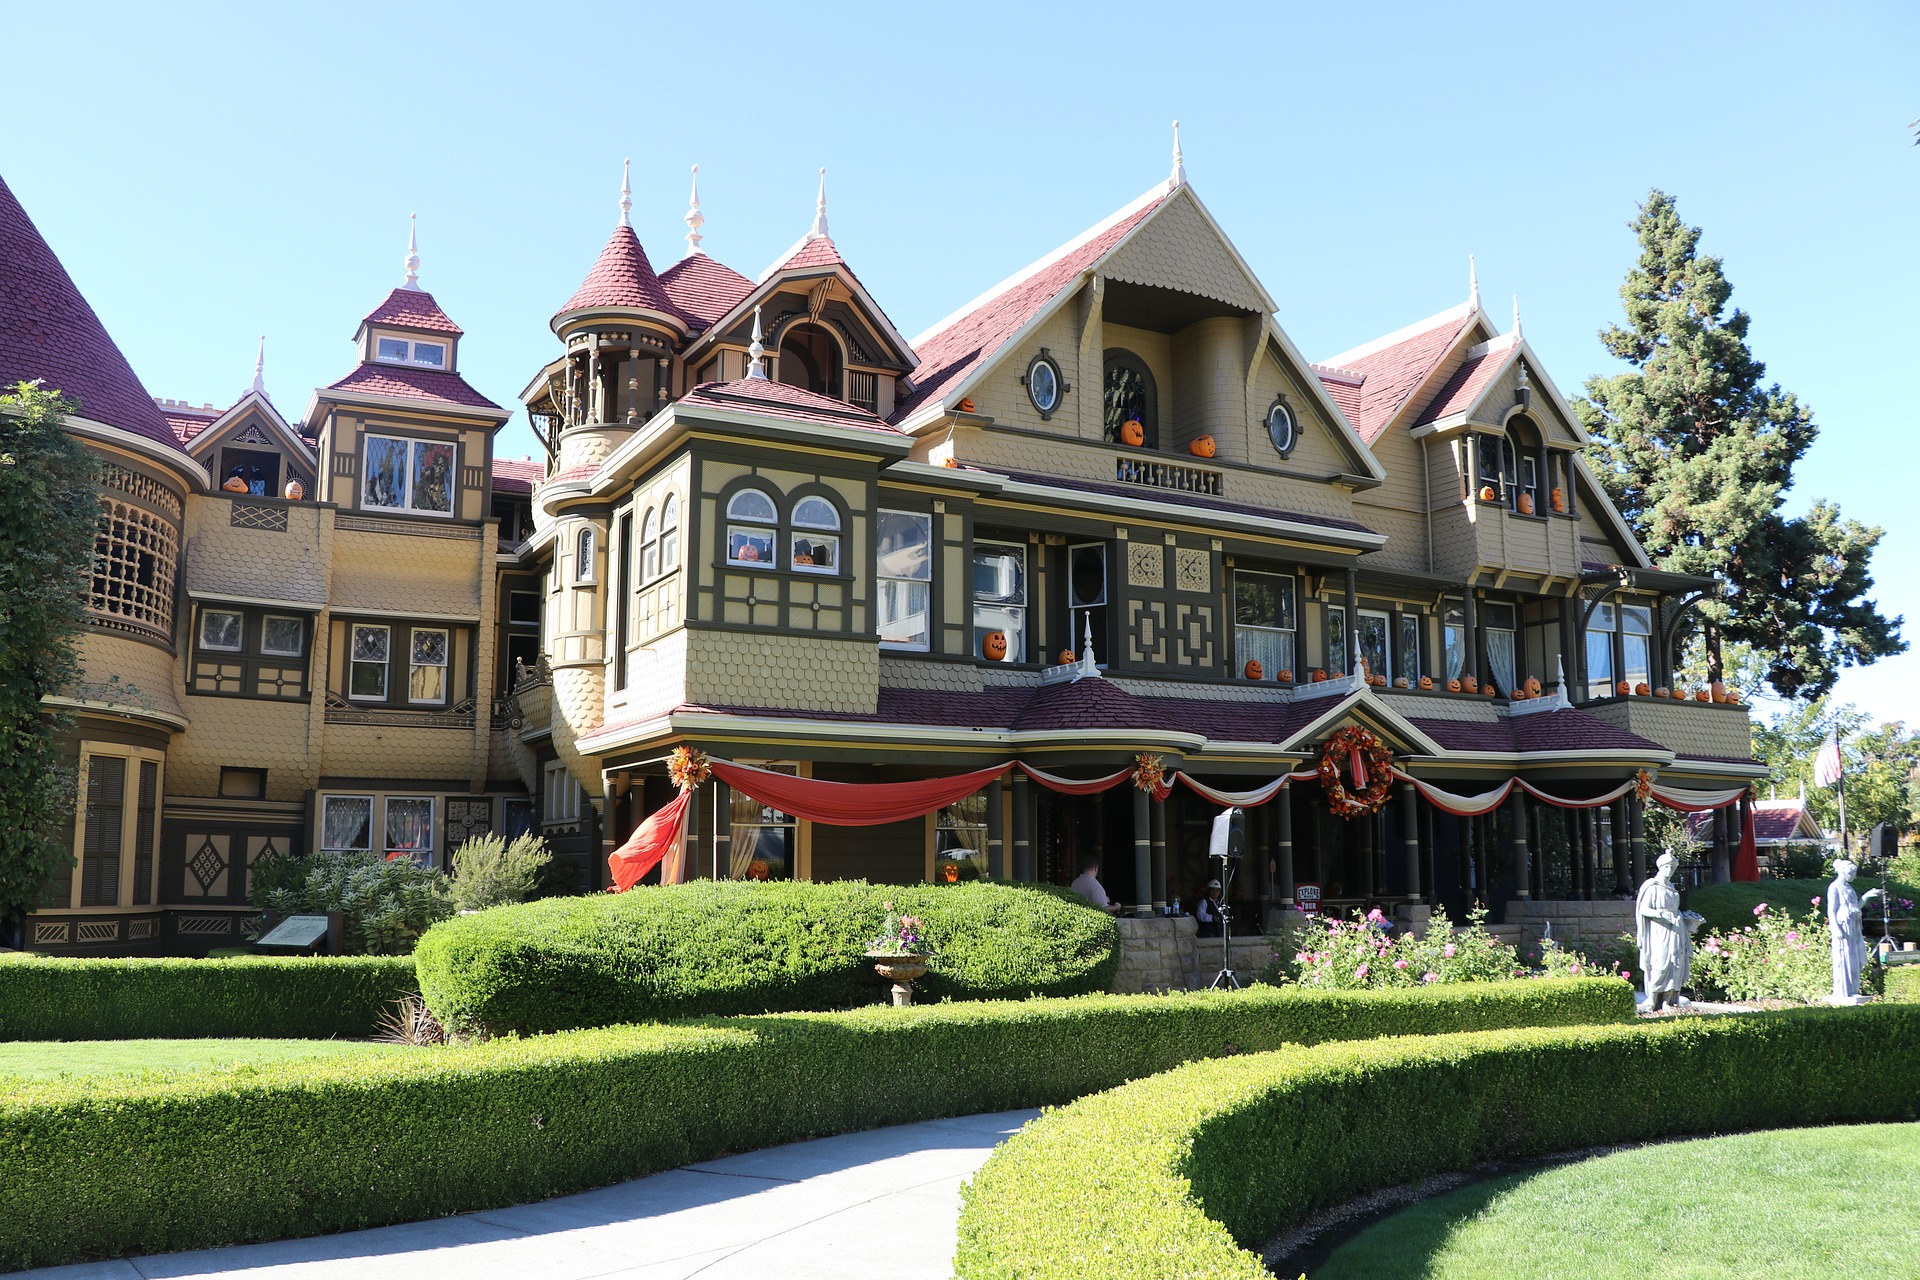 winchester-mystery-house-3879524_1920